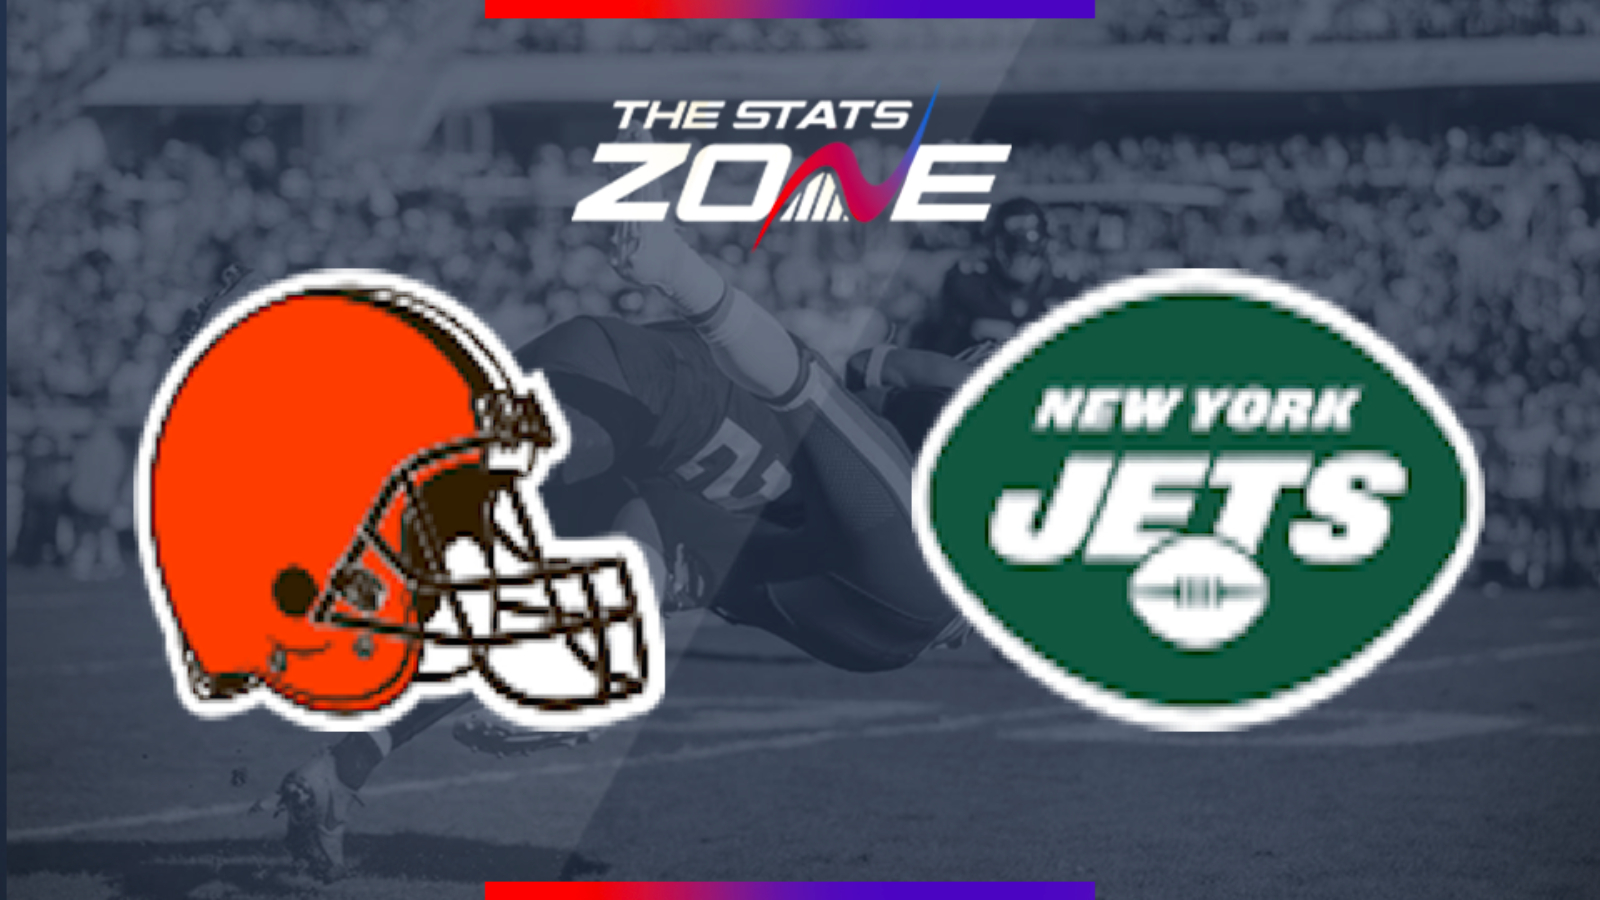 2019 Nfl Cleveland Browns New York Jets Preview